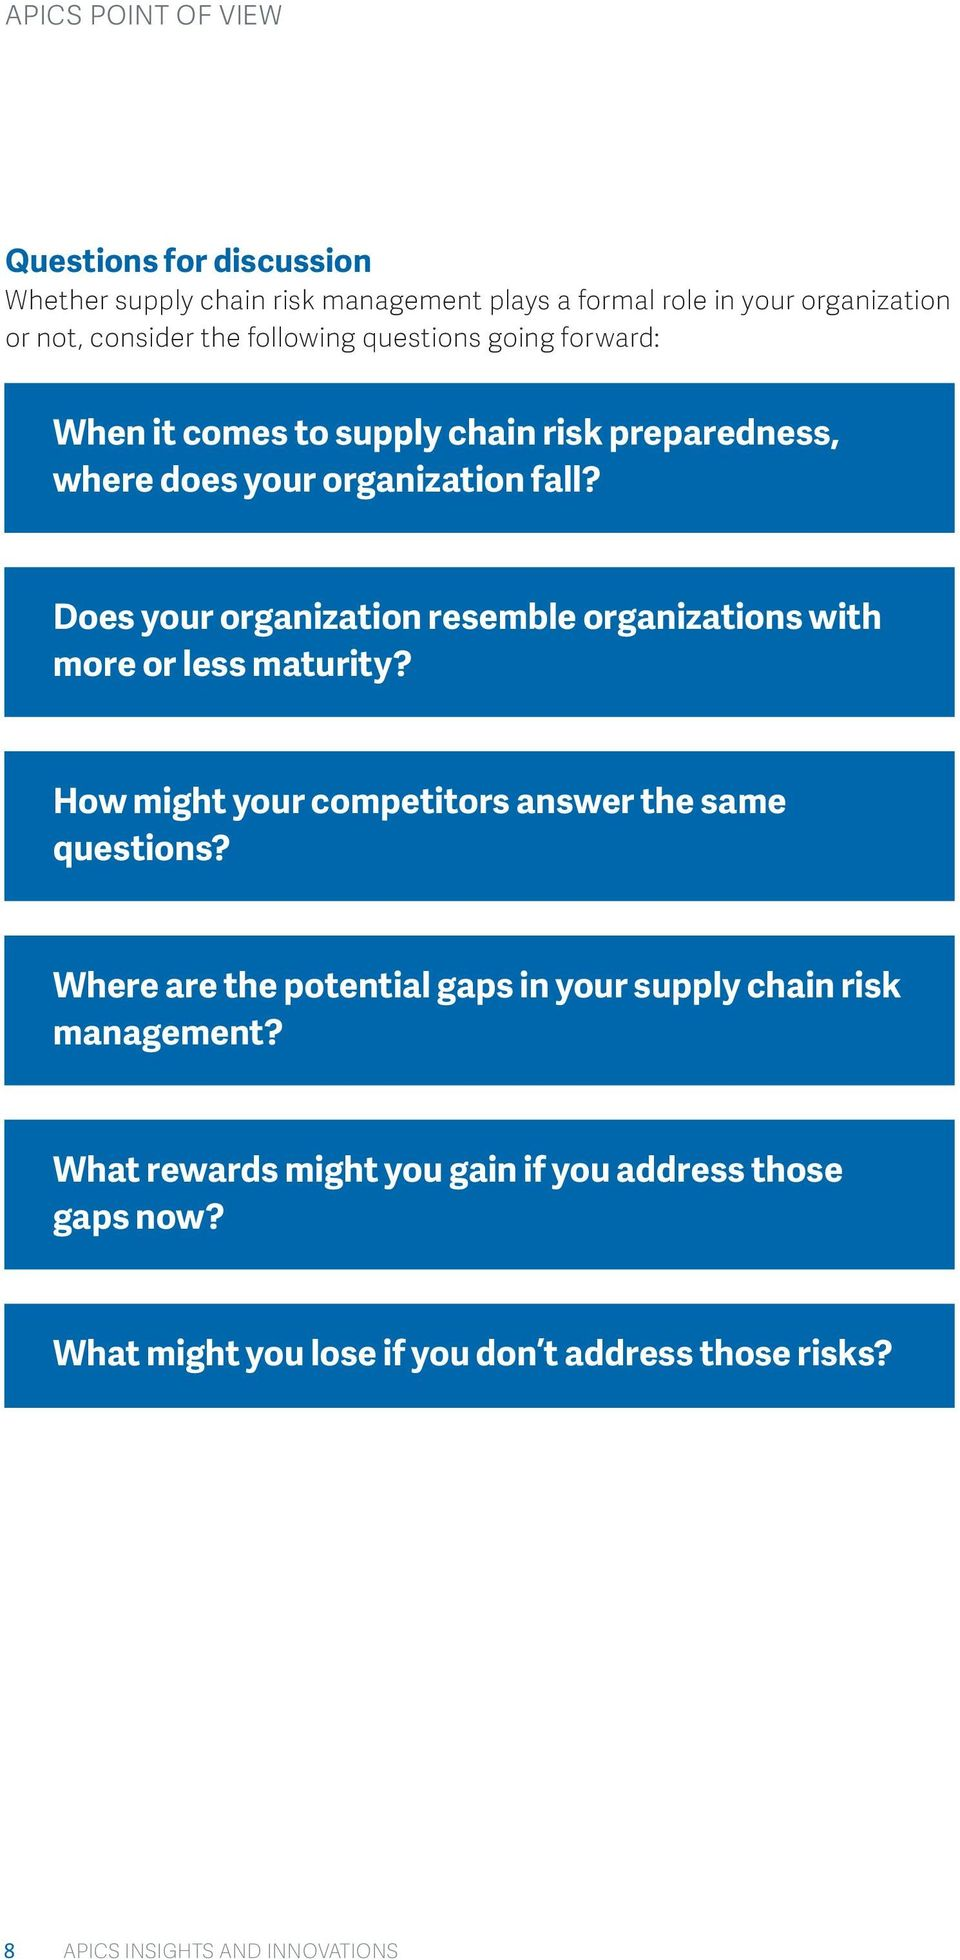 Does your organization resemble organizations with more or less maturity? How might your competitors answer the same questions?